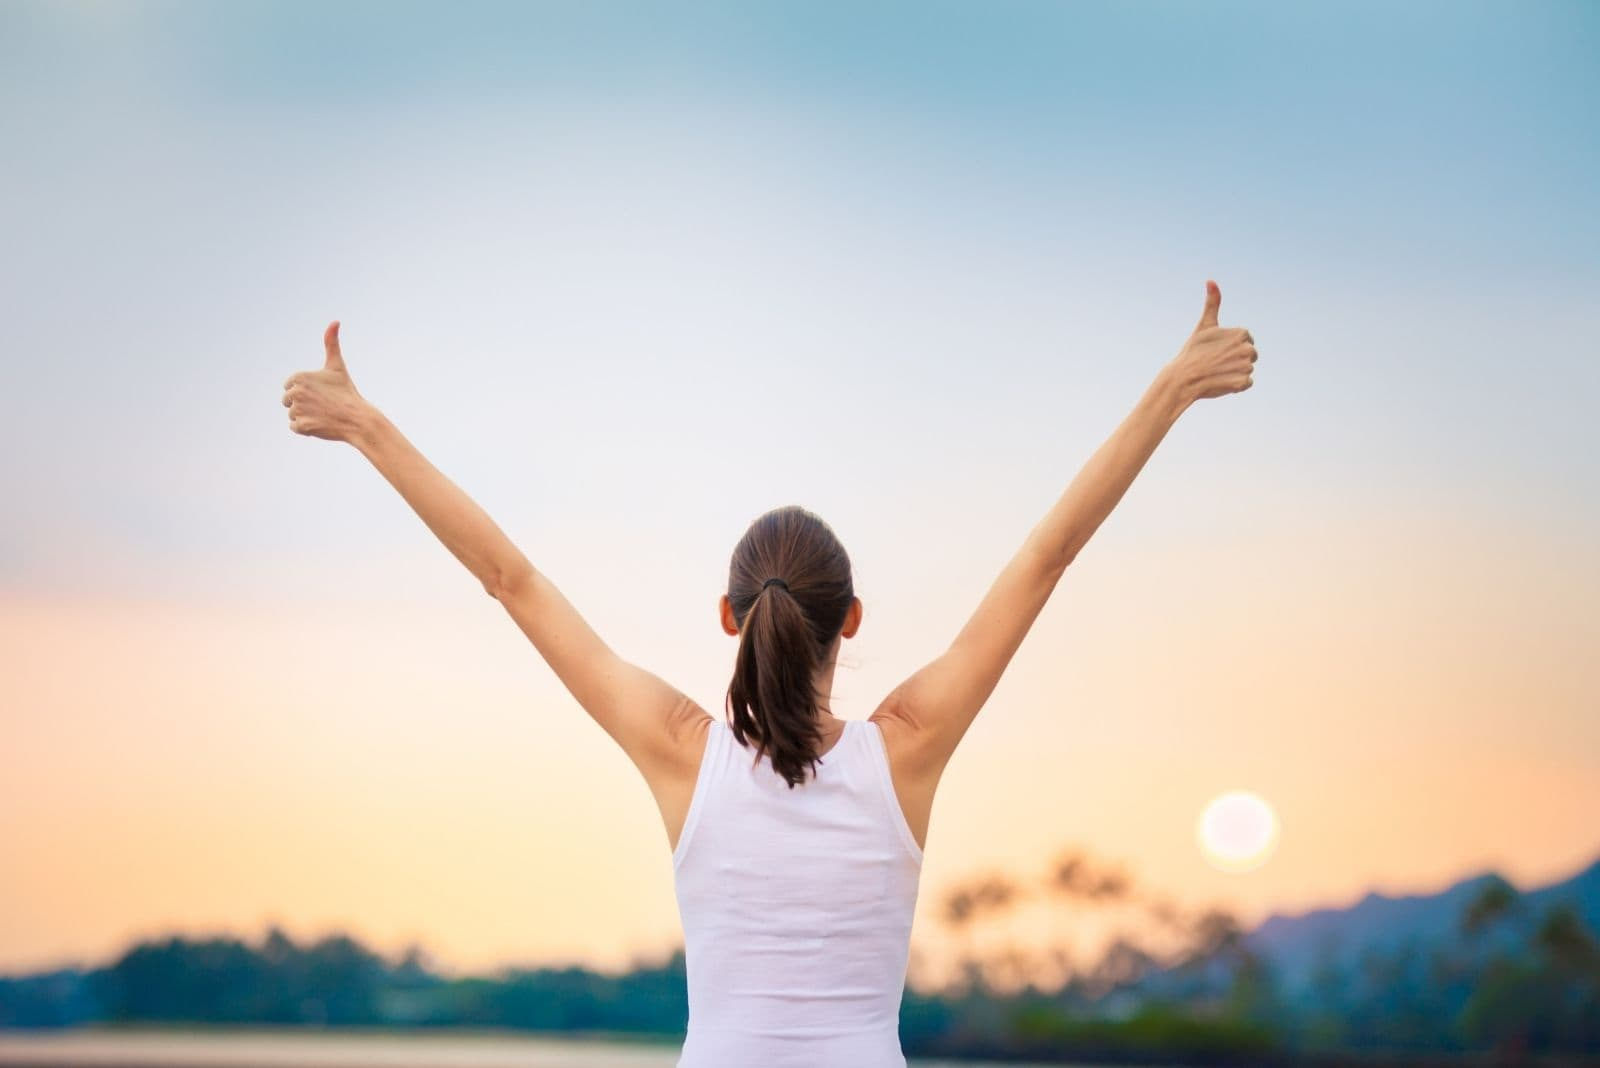 woman raising hands with ok hand sign facing sunrise in rear view